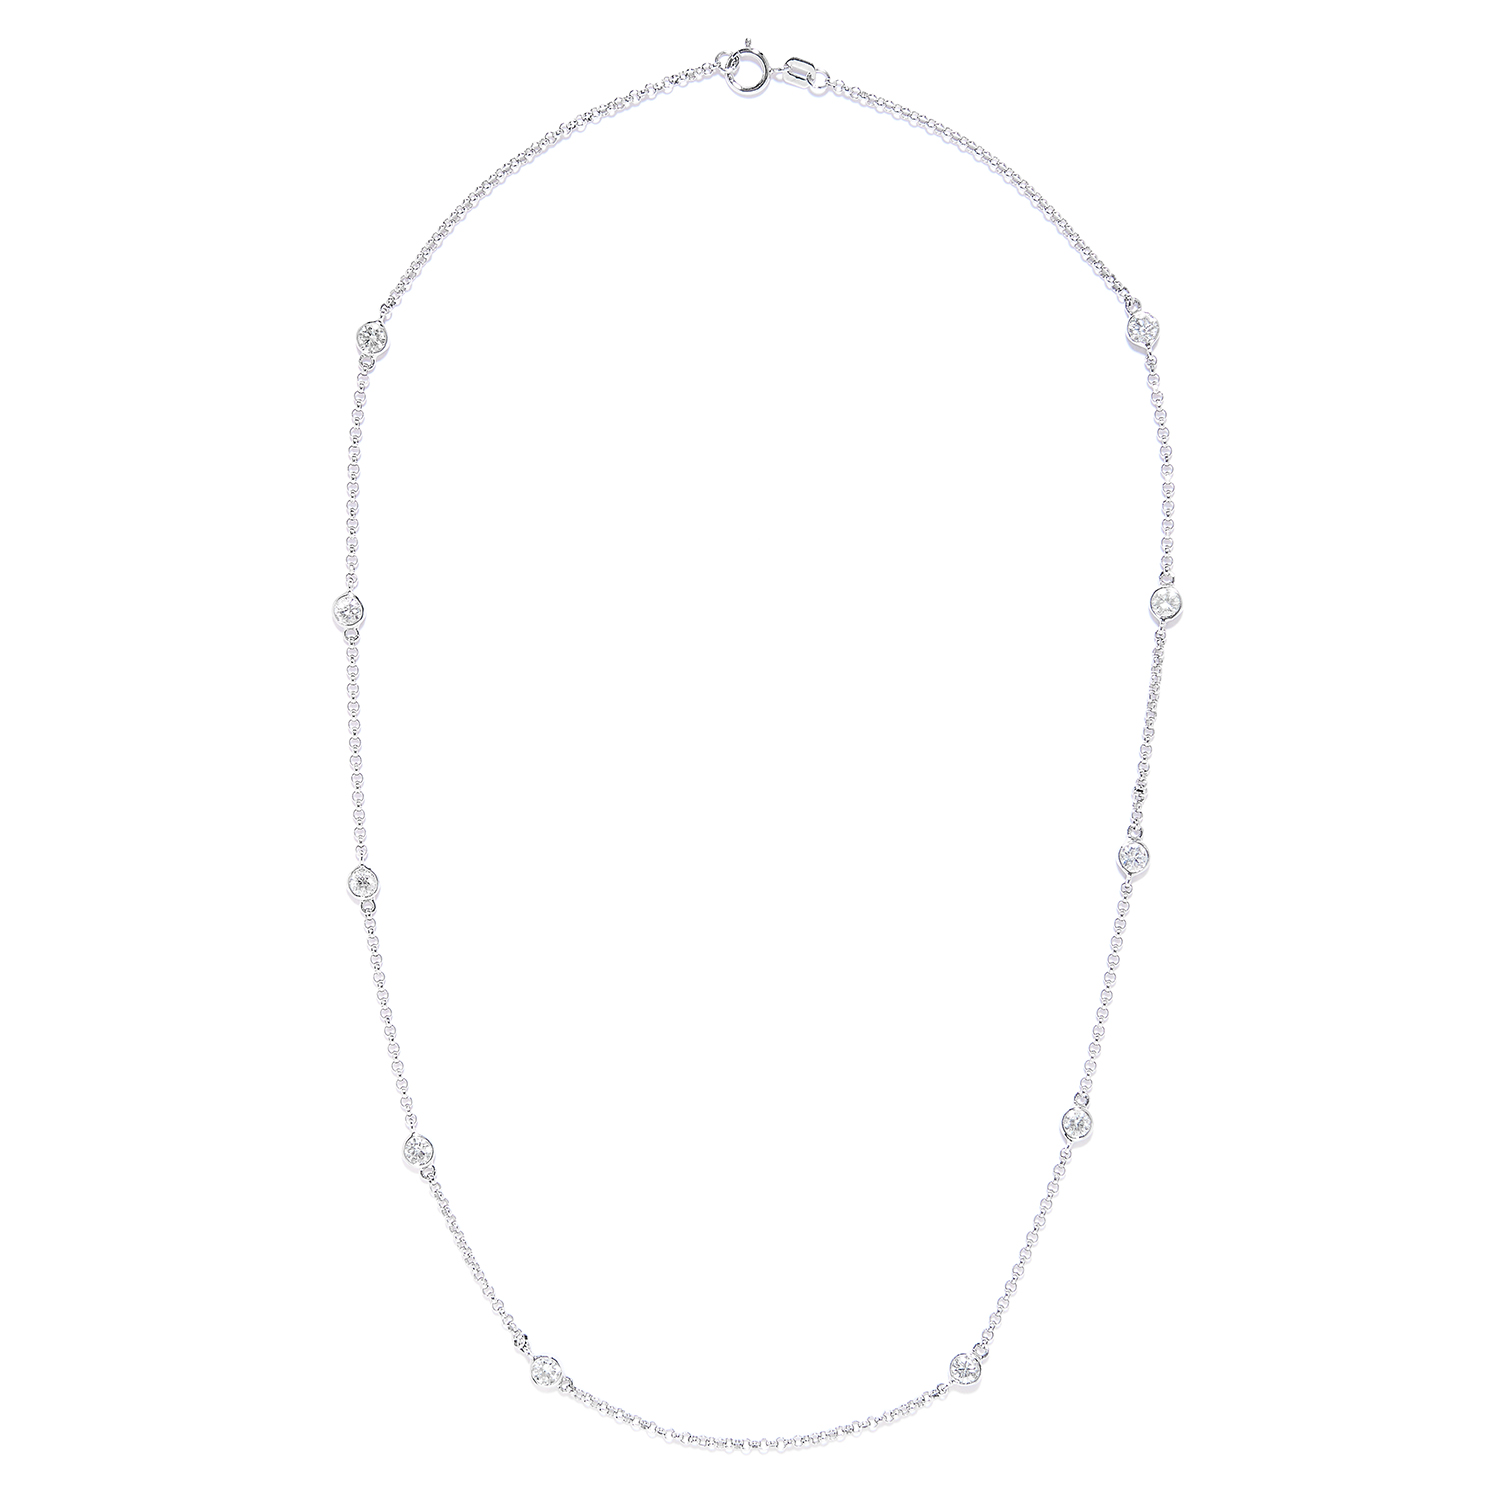 Los 1 - 1.85 CARAT DIAMOND CHAIN NECKLACE in 18ct white gold, set with ten round cut diamonds totalling